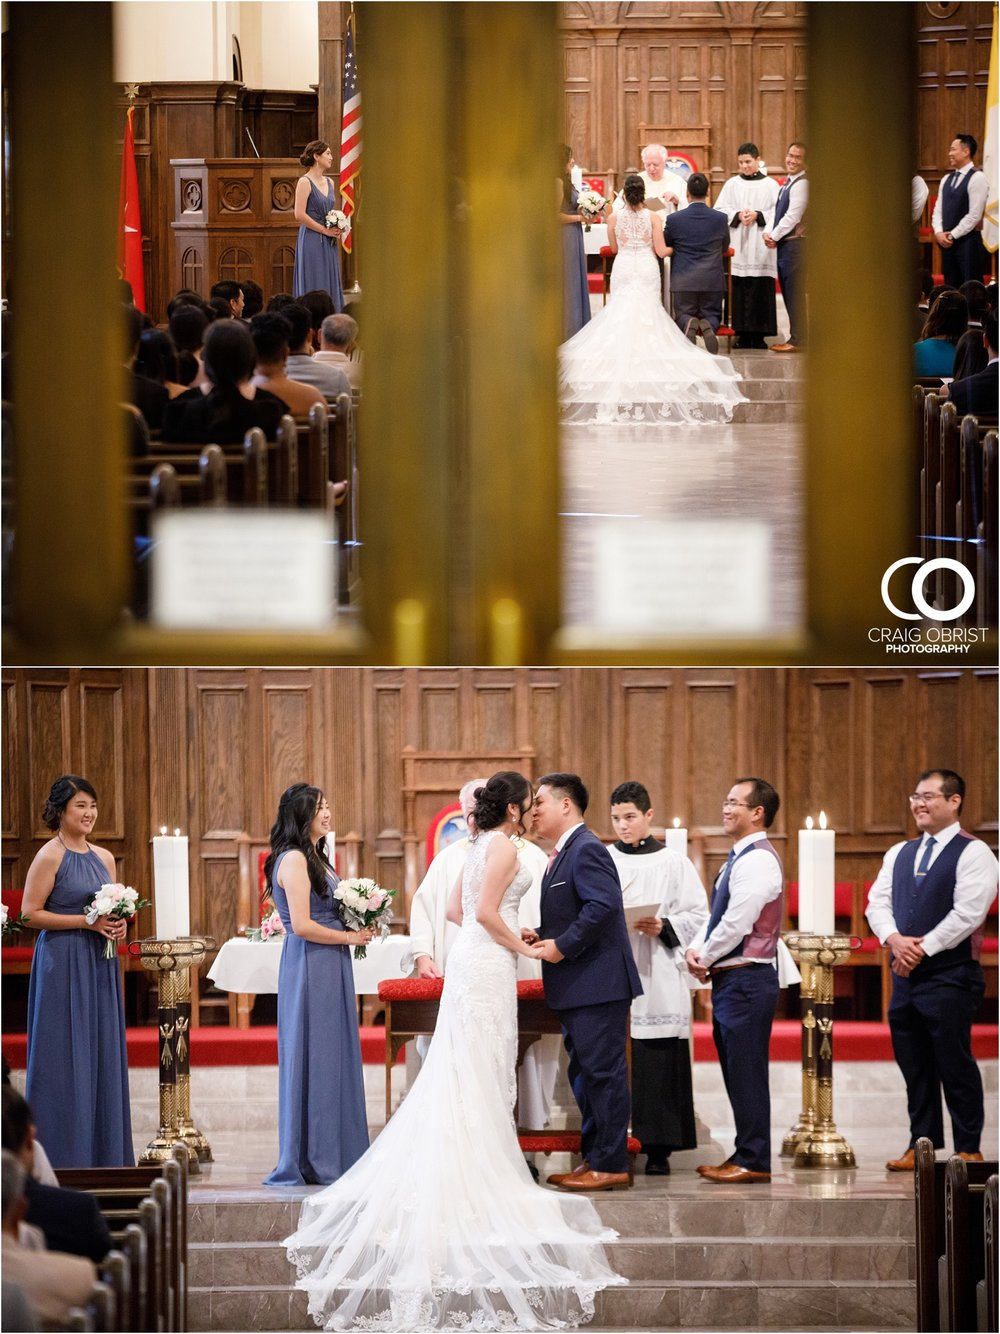 The Brickyard Holy Spirit Catholic Church Marietta Square Wedding Portraits_0050.jpg